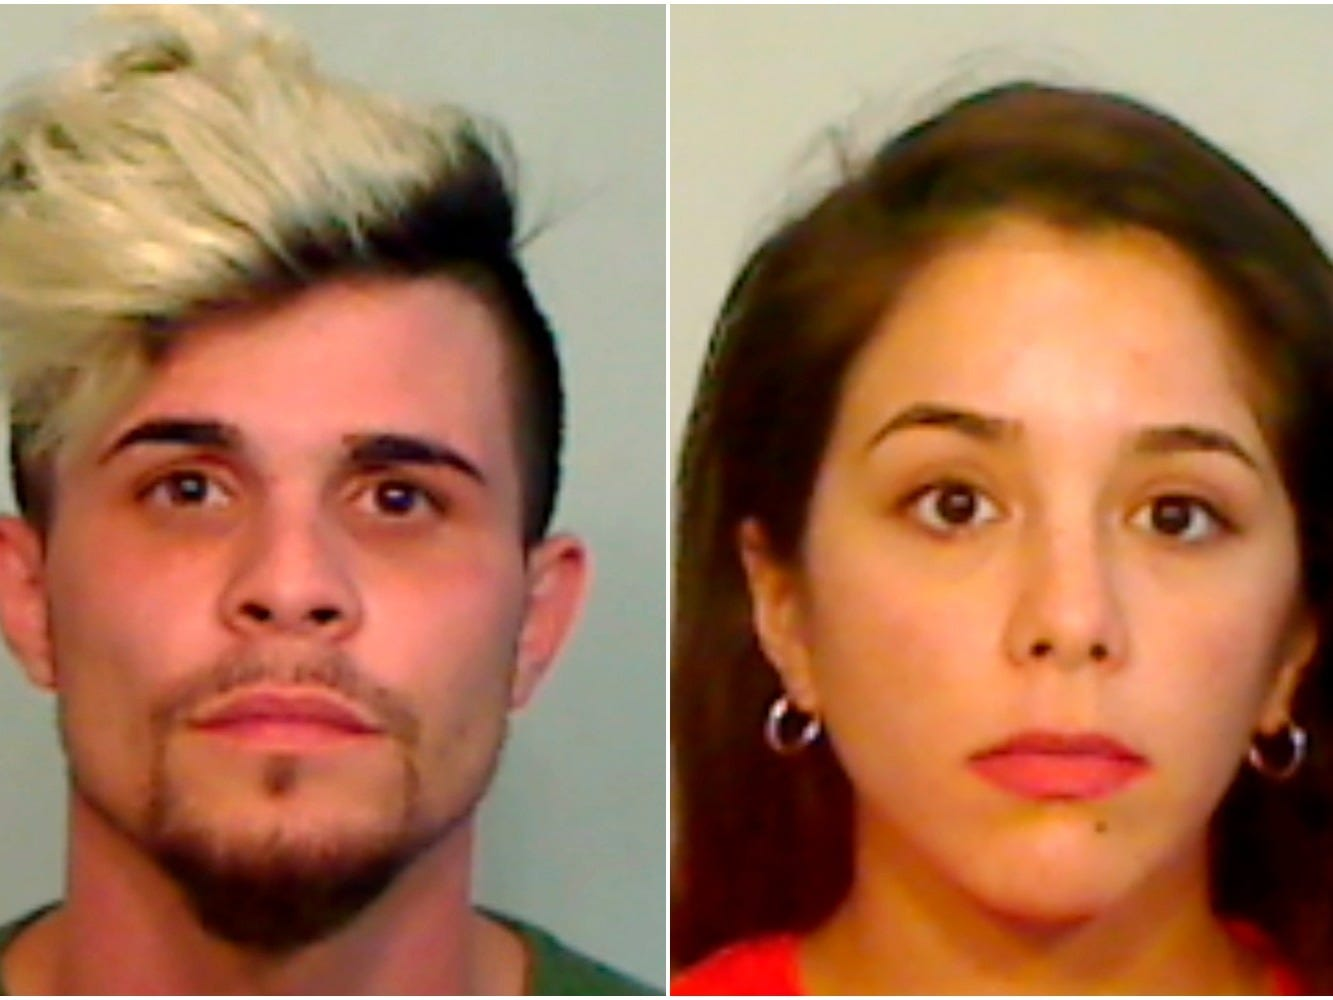 Florida couple arrested, charged with breaking COVID-19 isolation